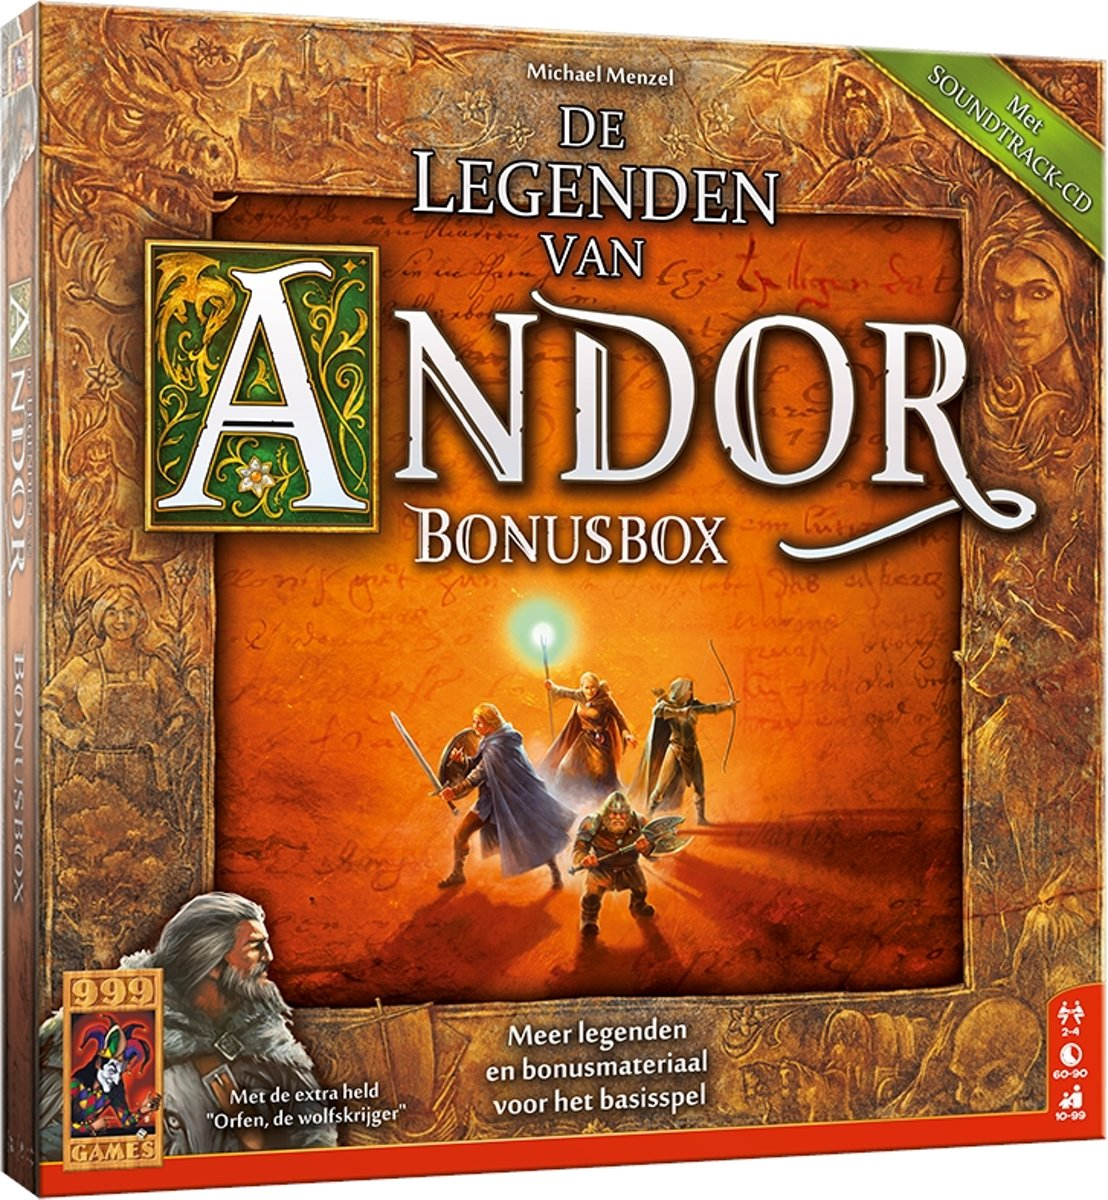 De Legenden van Andor: Bonus Box Bordspel